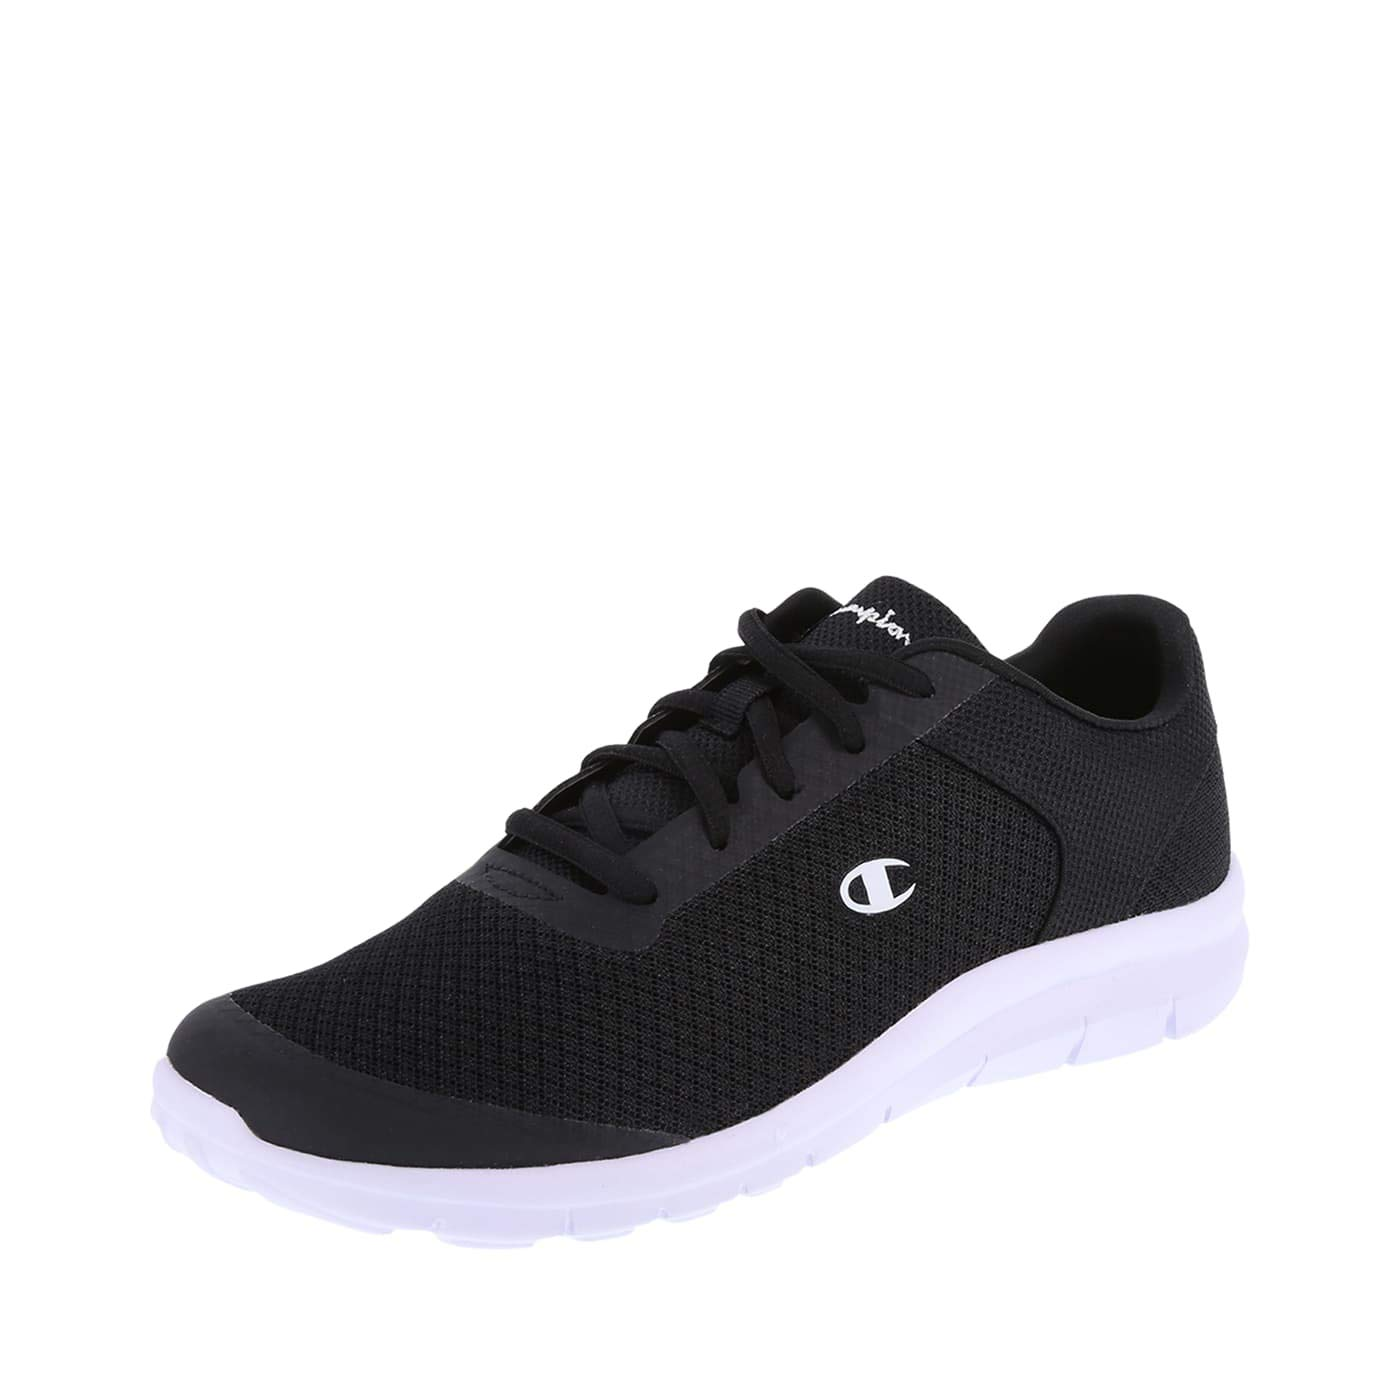 c56869af0ee99 Champion Women s Gusto Cross Trainer Shoes - Ideal for Running ...